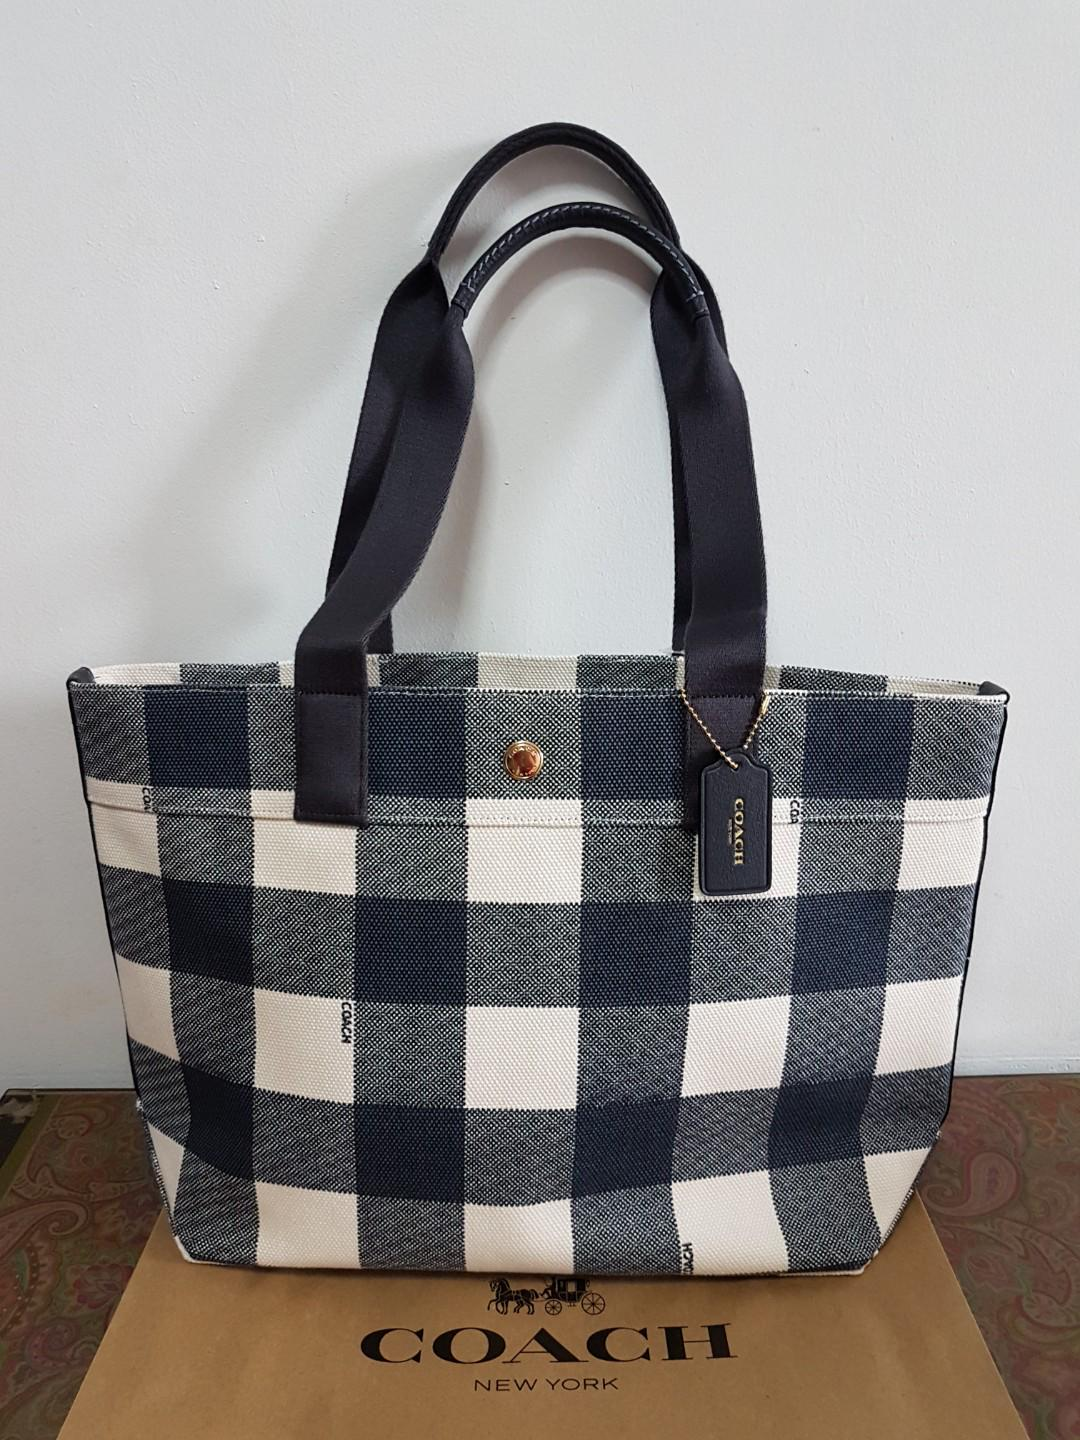 36c0210b4b Brand New! Authentic Coach Buffalo Plaid Print Midnight Canvas Tote ...